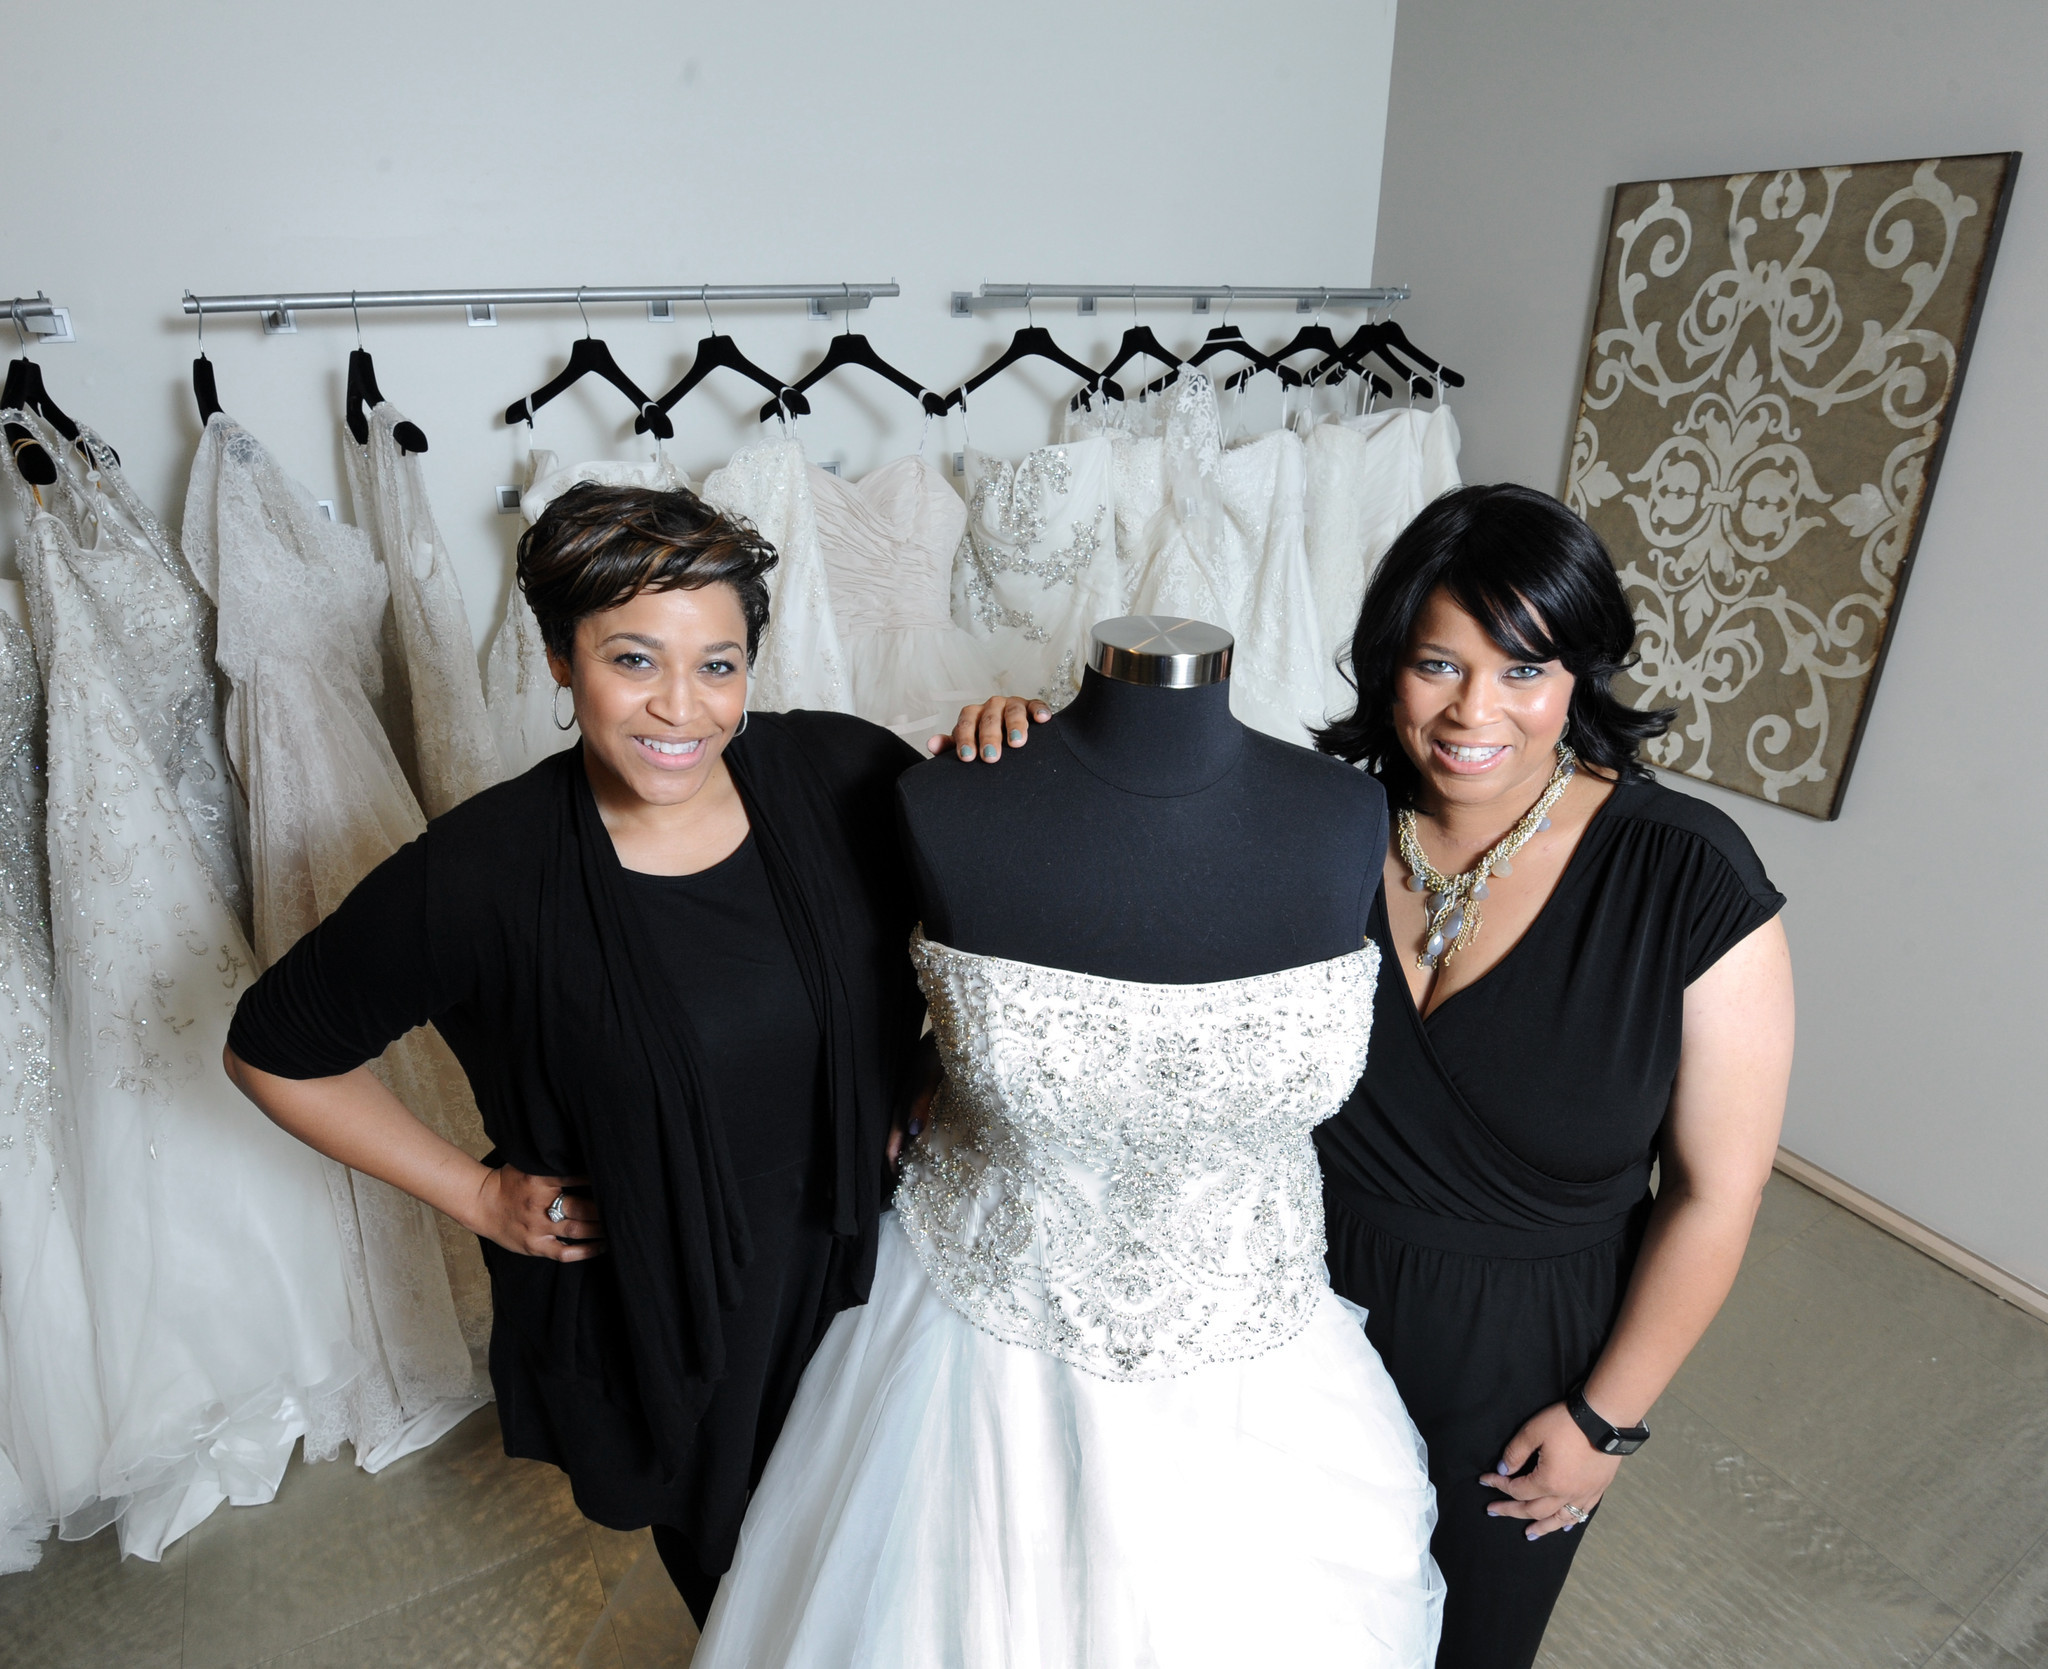 Plus Size Bridal Shop In Columbia Walks Down Reality TV Aisle